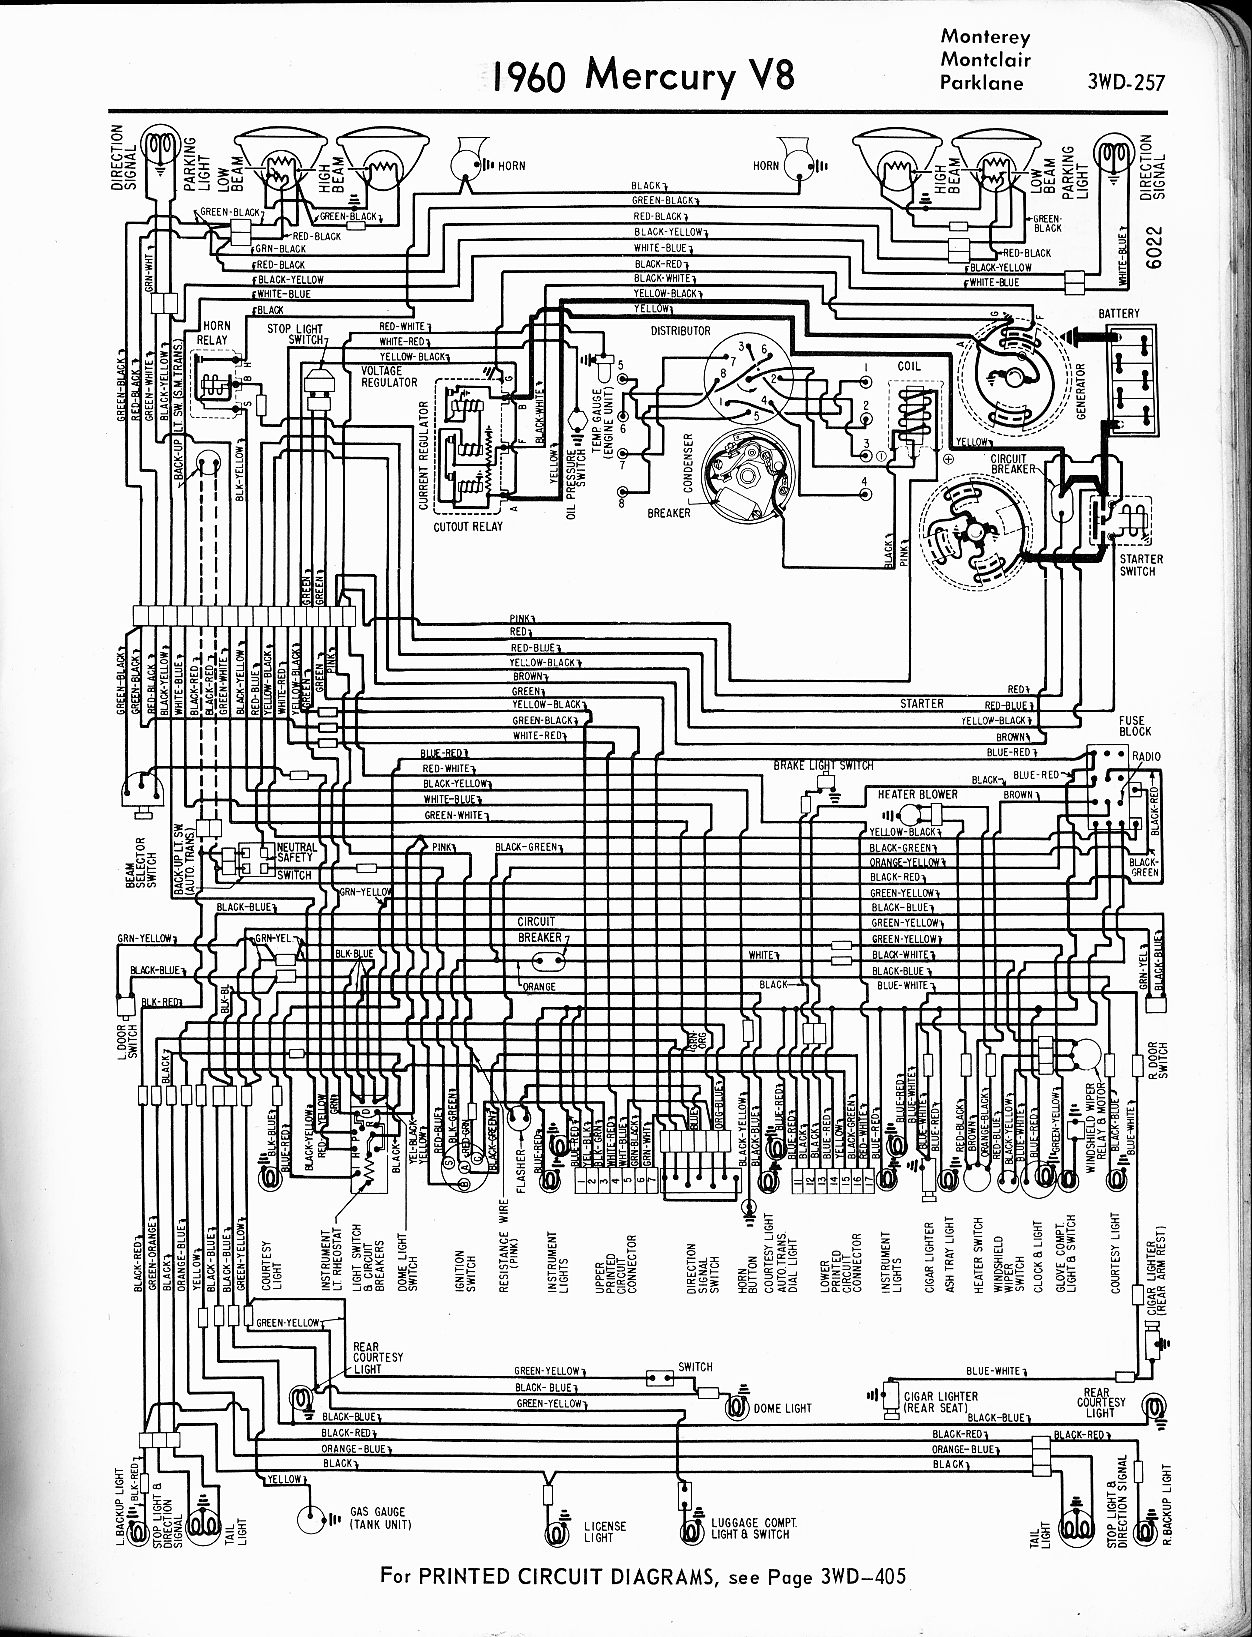 56 Mercury Montclair Wiring Diagram Schematic Diagram Data